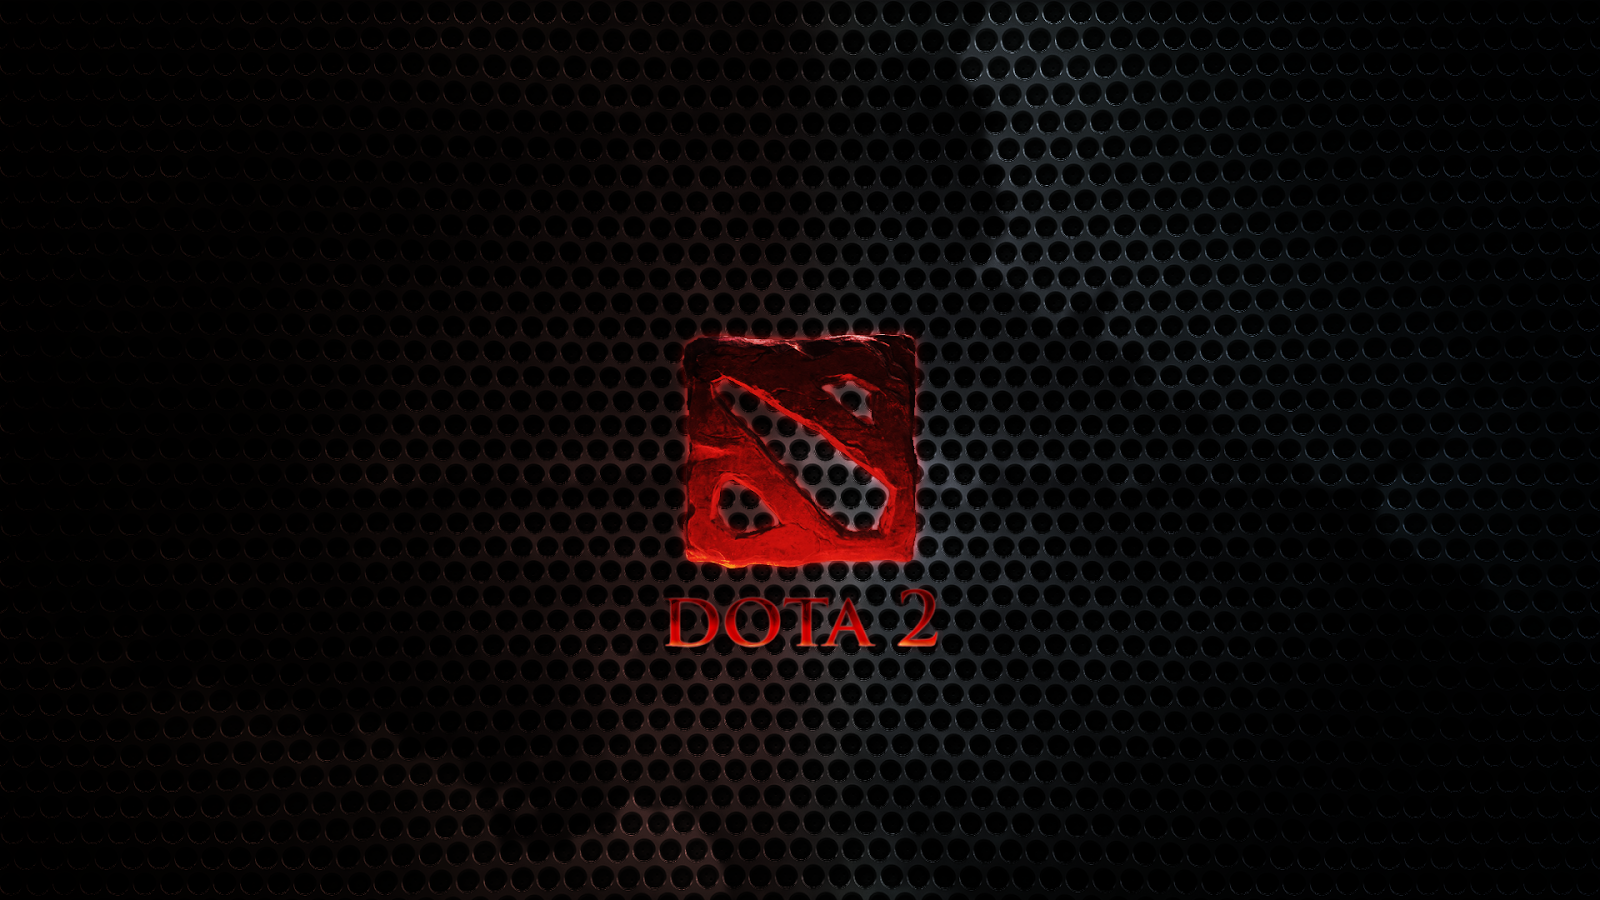 Dota 2 Wallpapers Dota2 Wallpaper